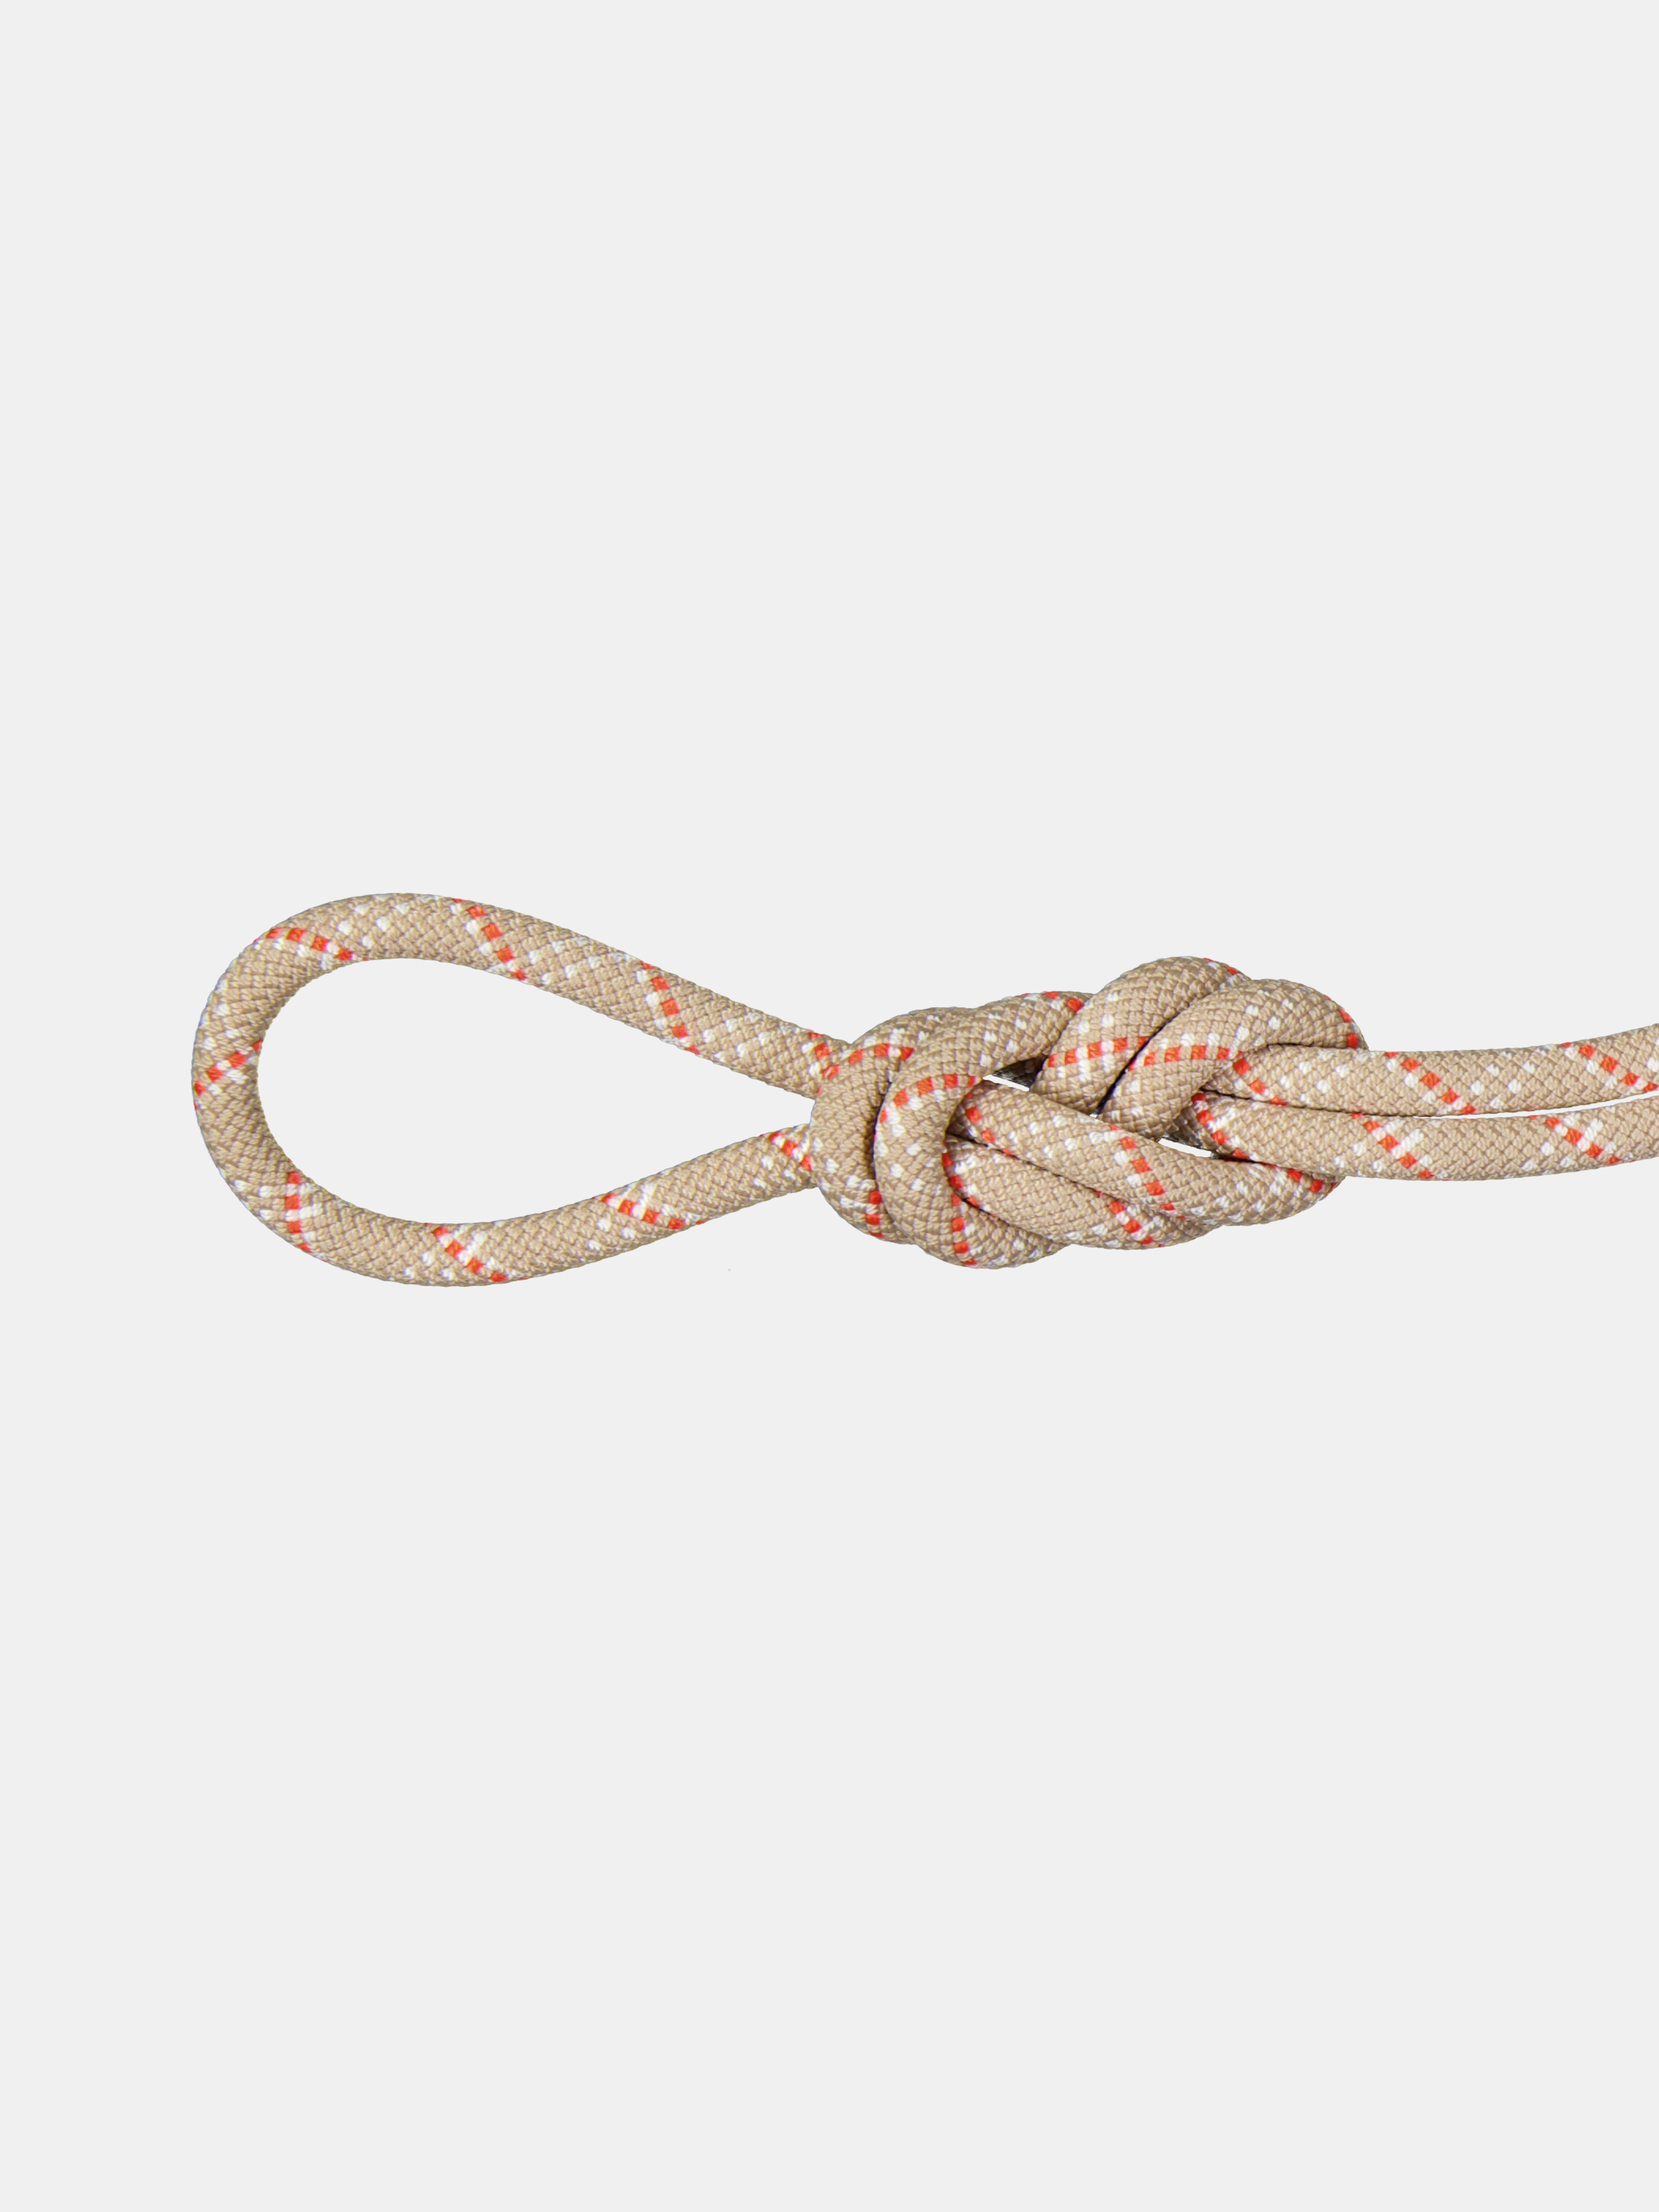 9.5 Gym Classic Rope thumbnail